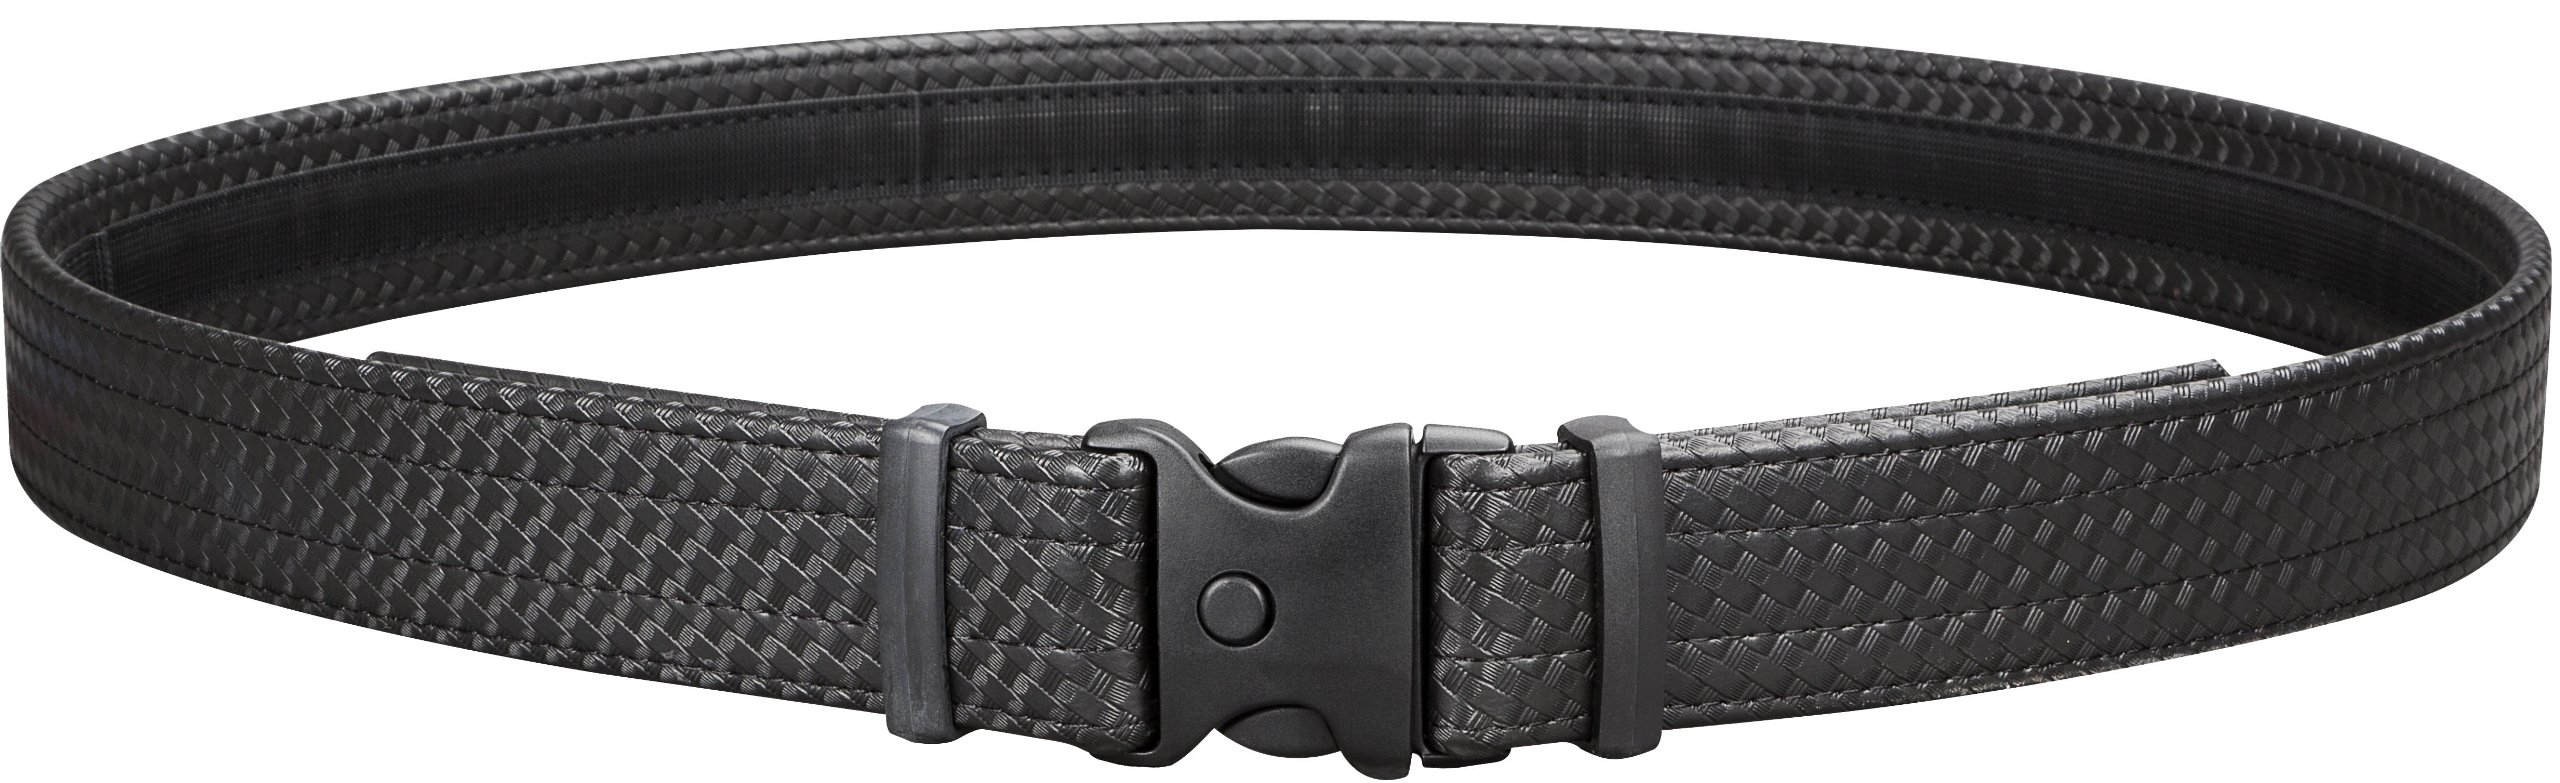 Uncle Mike's Law Enforcement Mirage Basketweave Hook and Loop Lining Ultra Duty Belt (3X56-60 - Inch, Black)